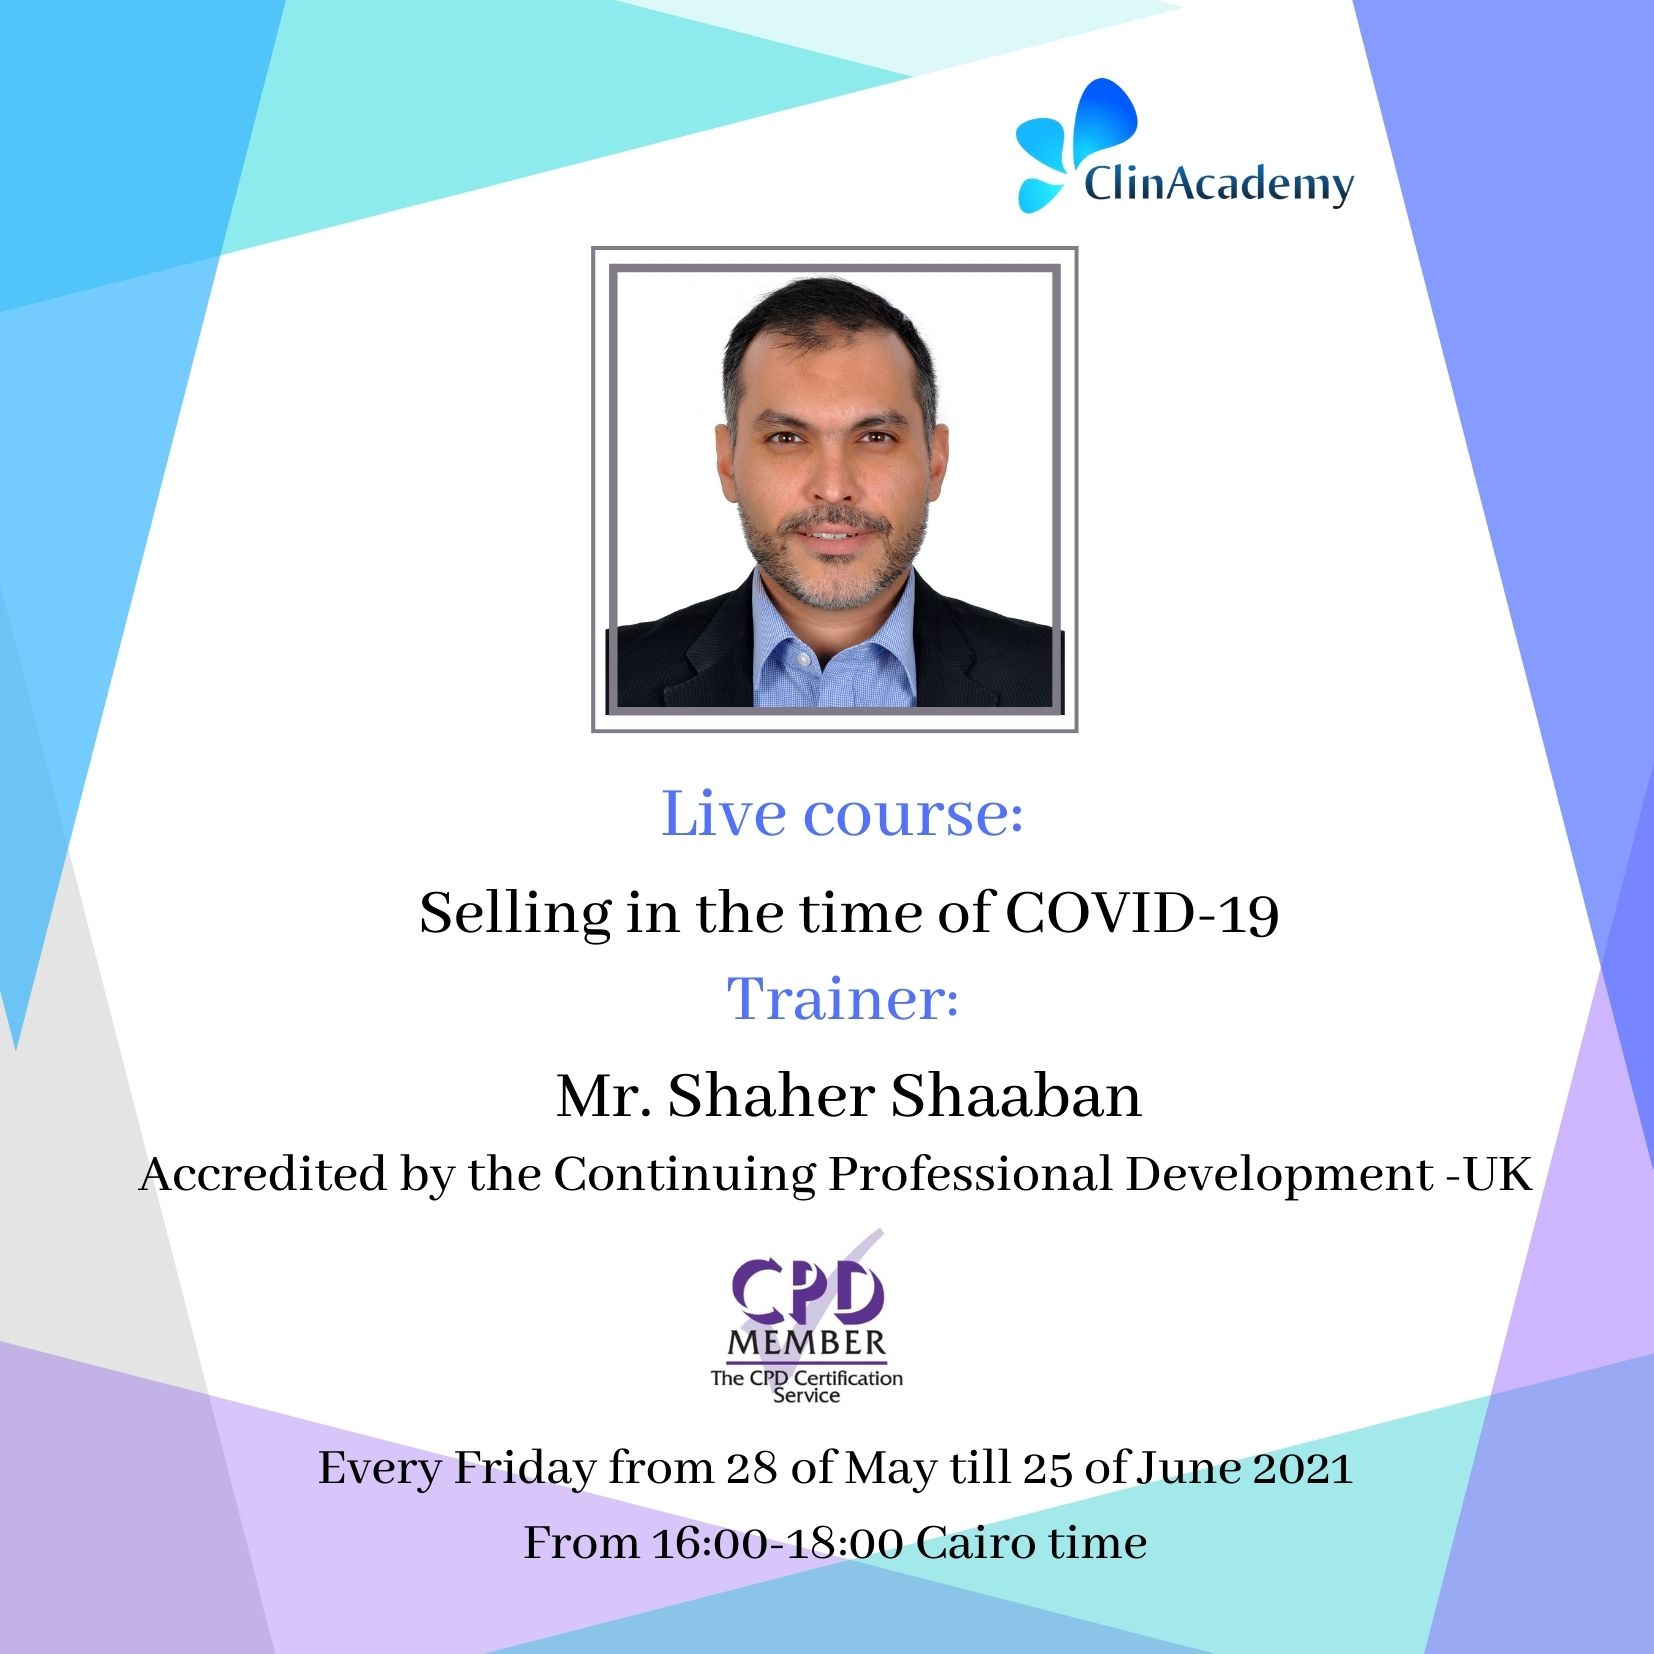 <b>Selling in the time of COVID-19</b>